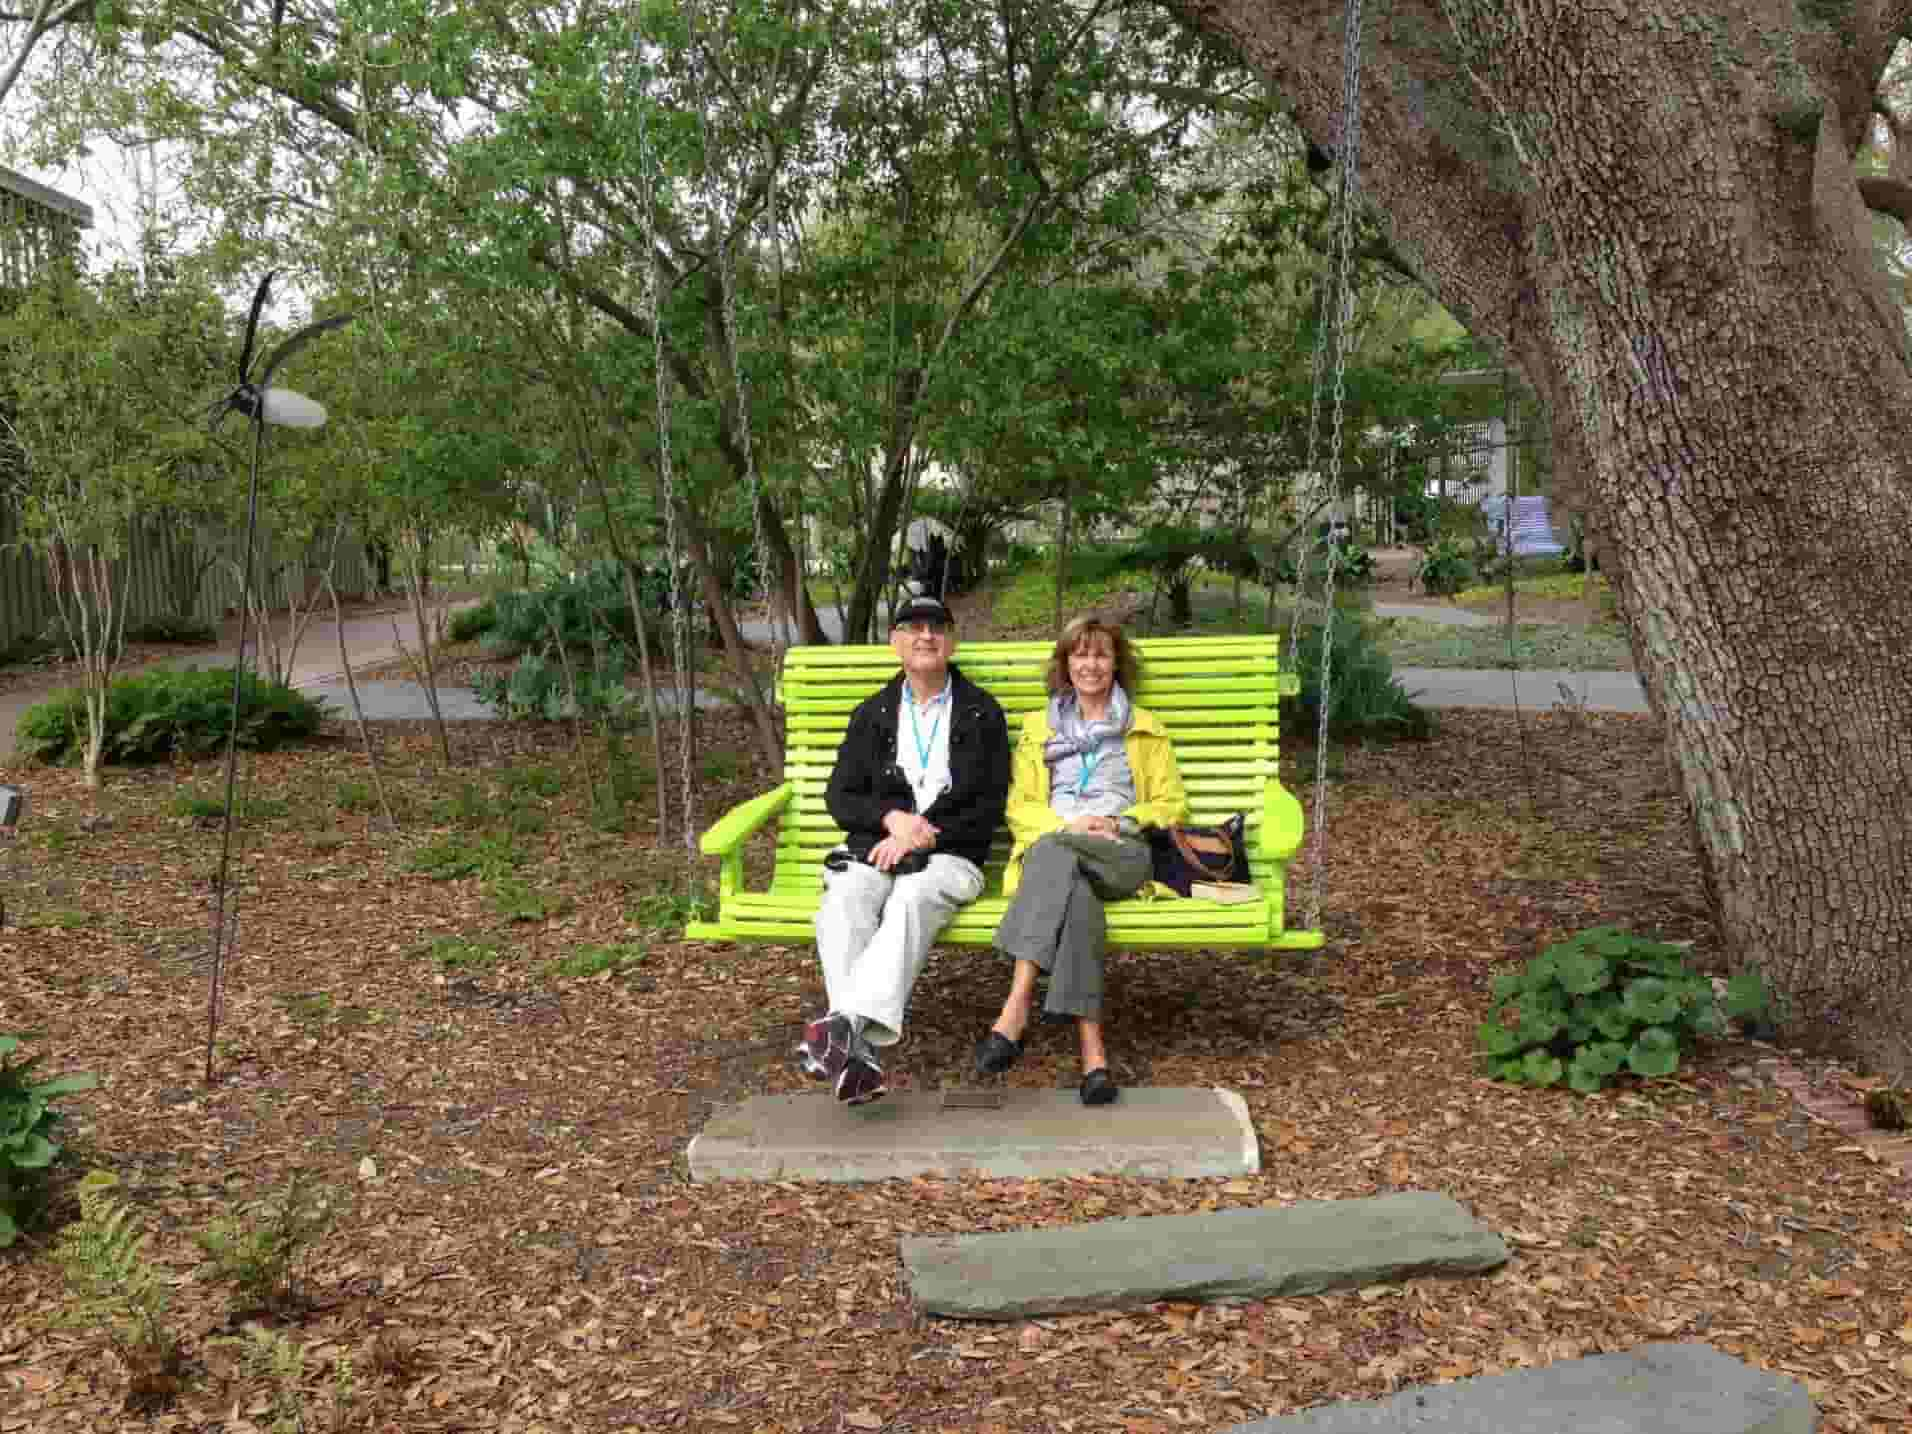 John and Jan Kosta take a break in the New Orleans Botanical garden on our Secret Gardens of New Orleans Tour in 2013